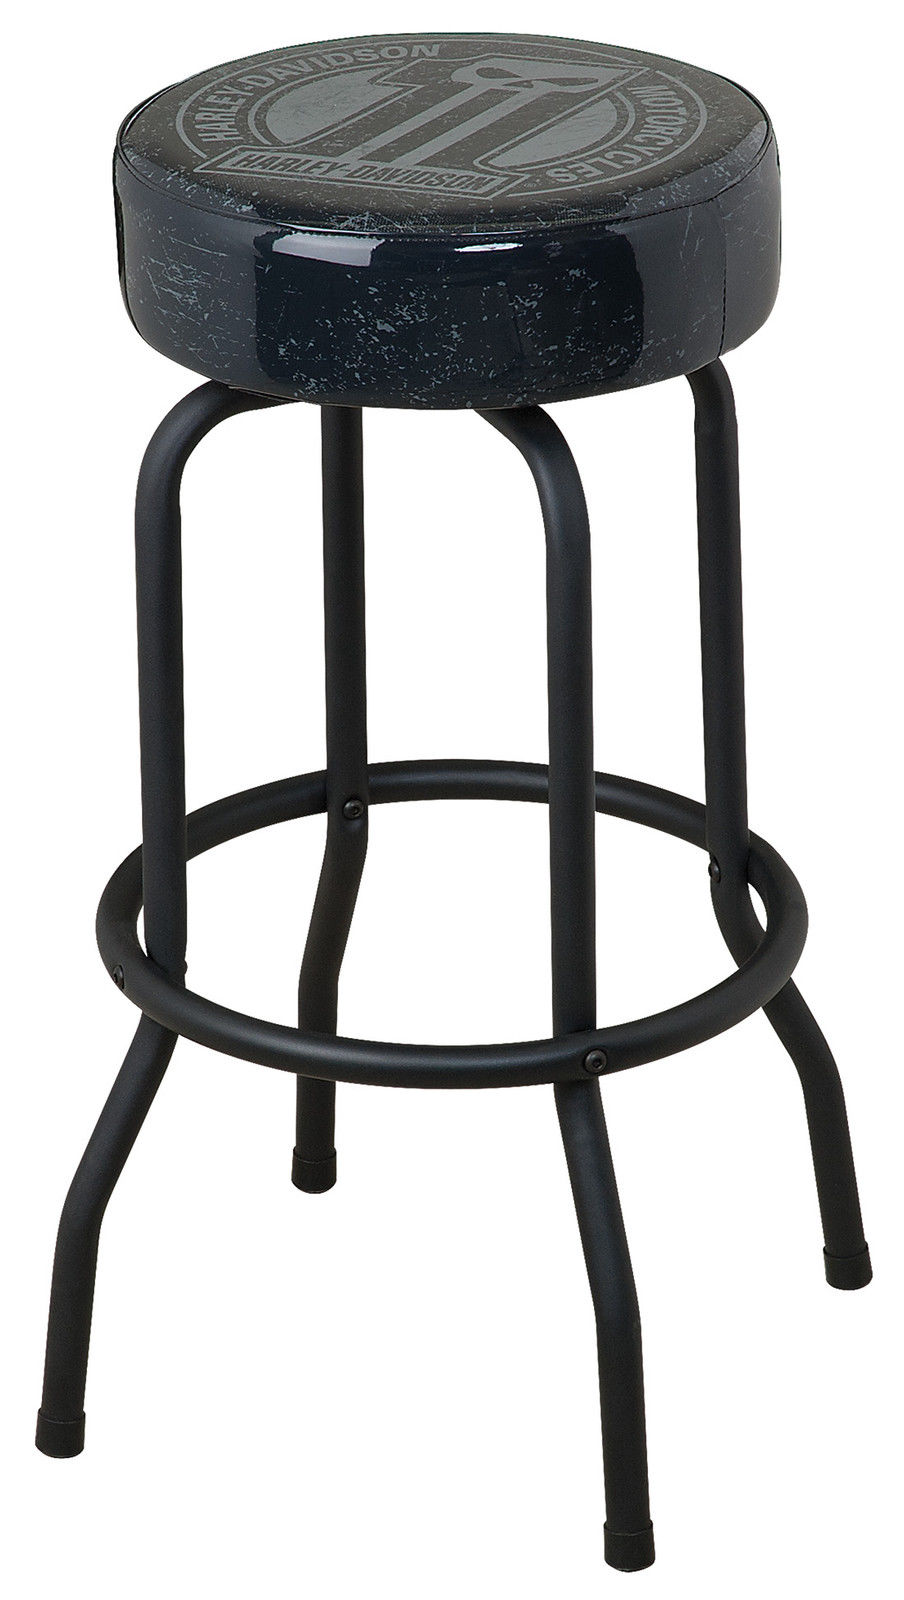 Harley-Davidson Dark Custom Bar Stool HDL-12130